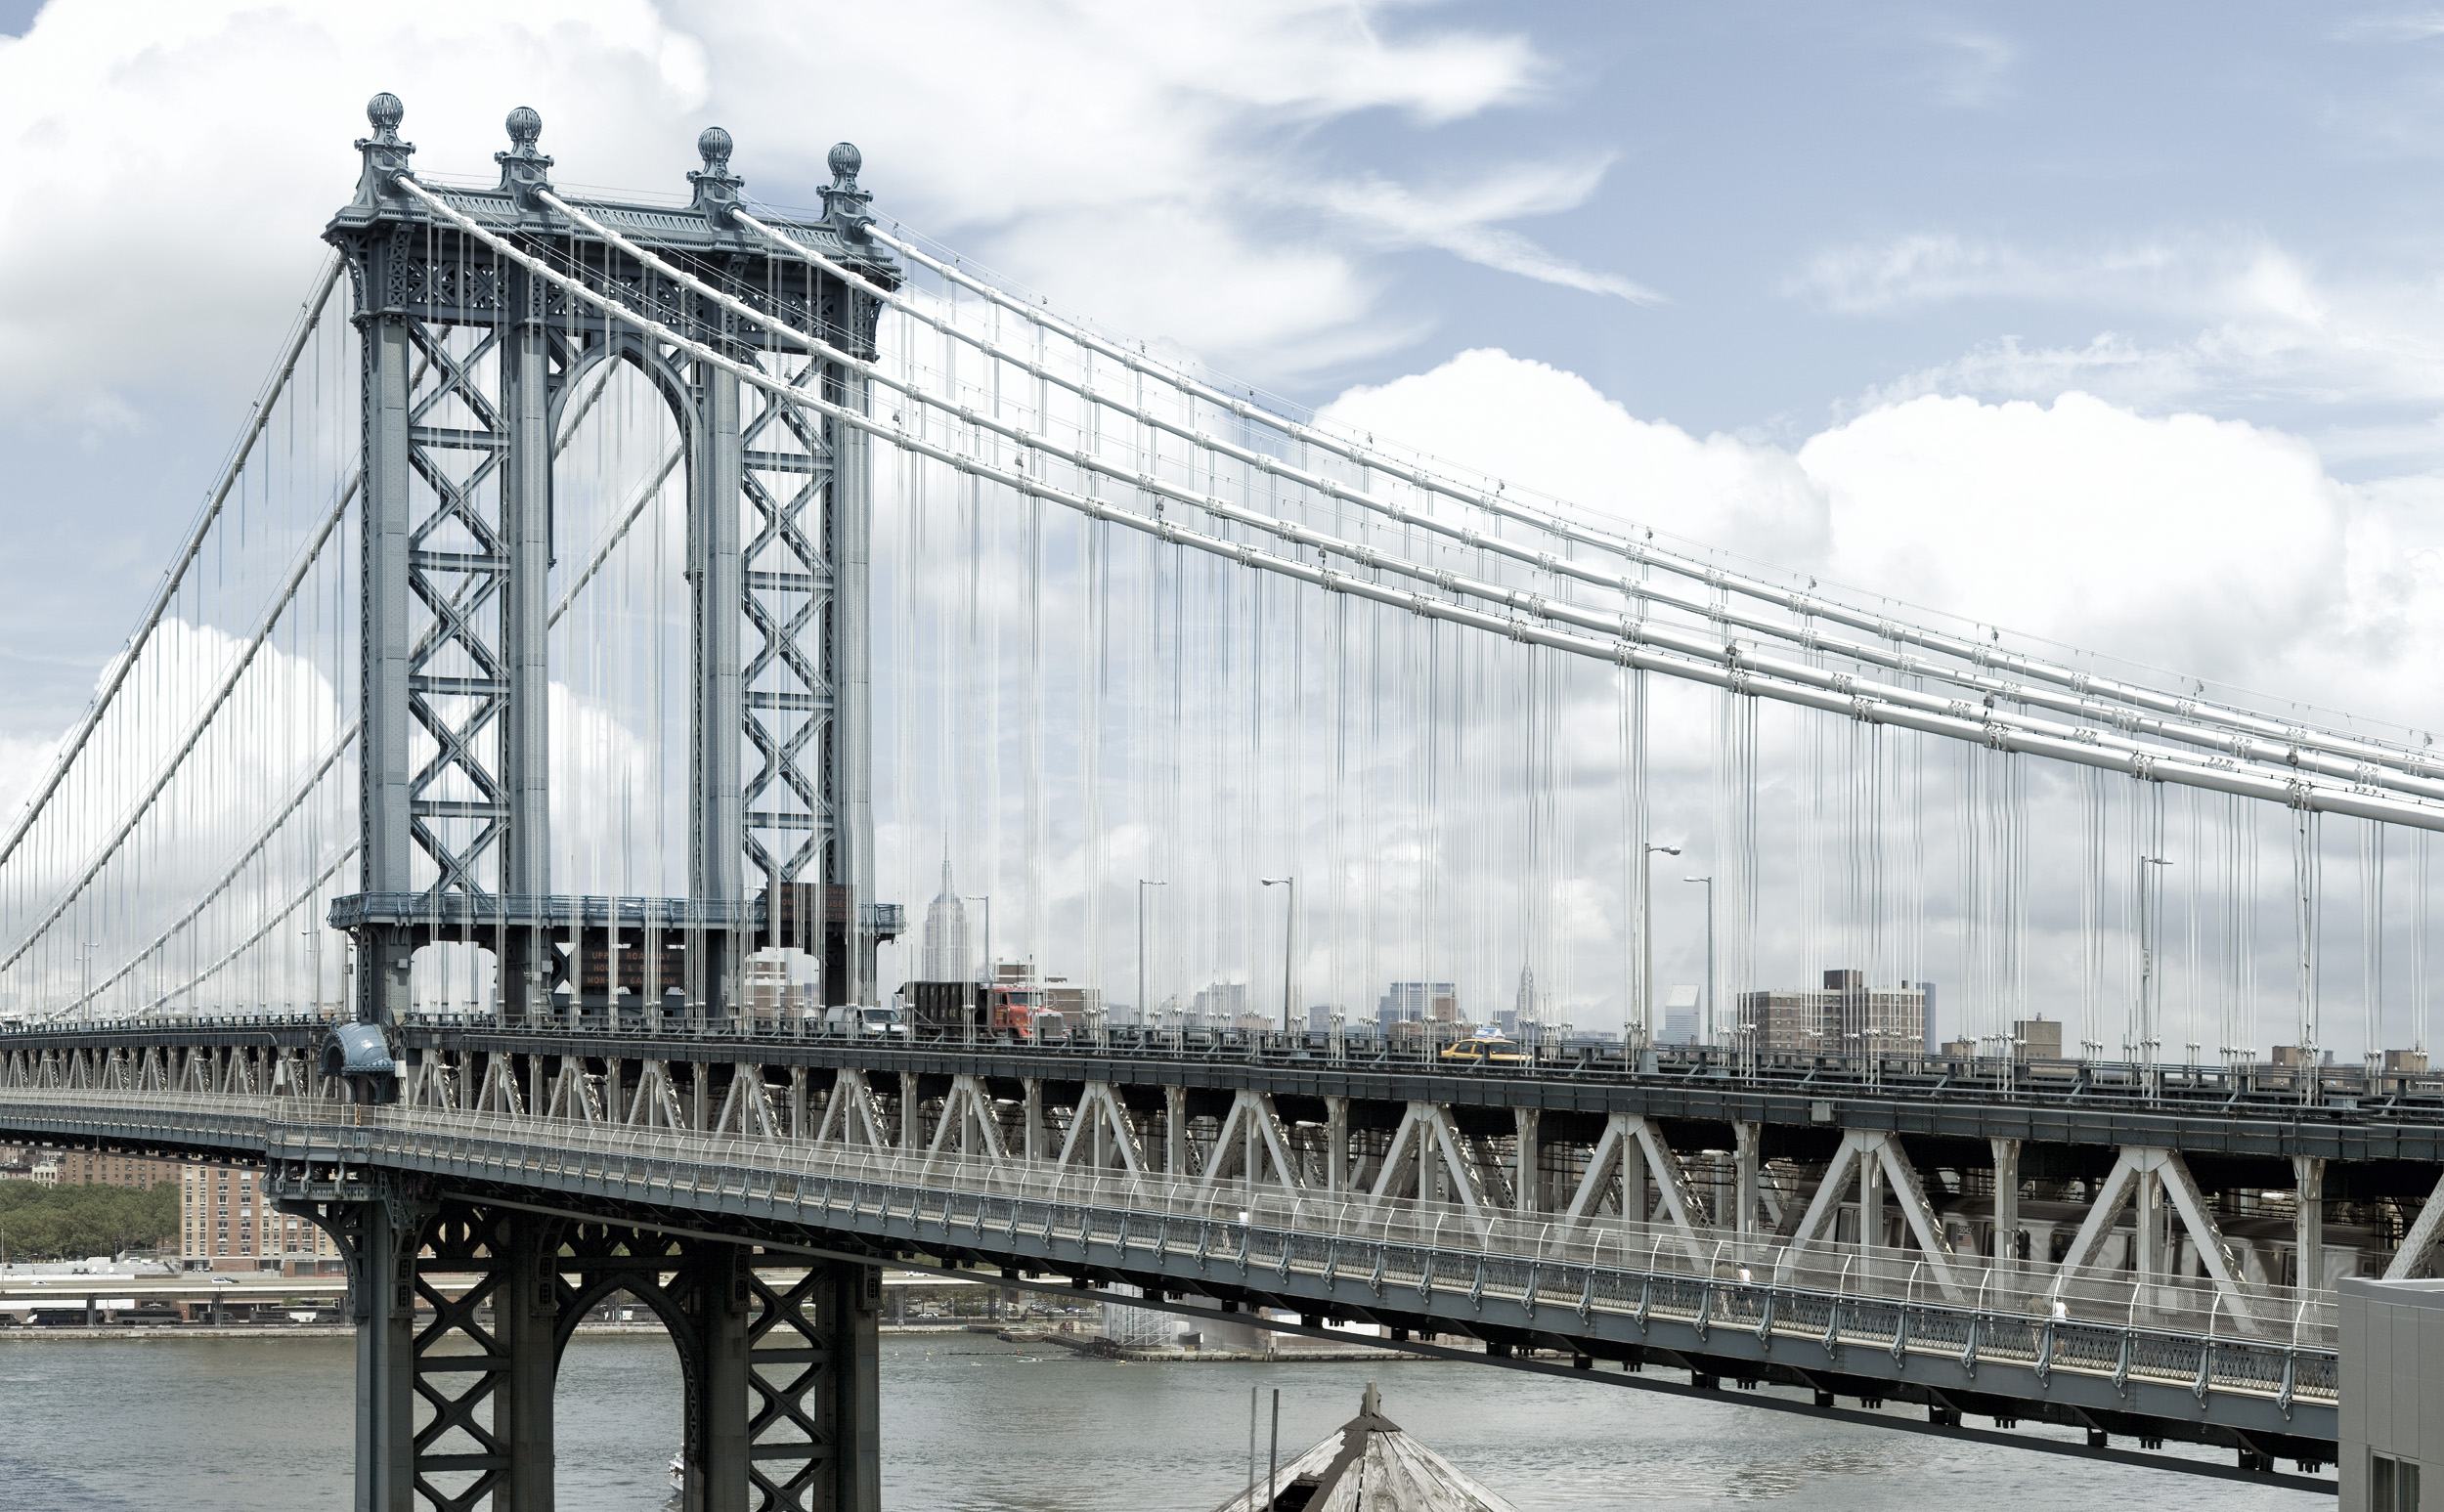 USNY-MAB - Manhattan Bridge.jpg